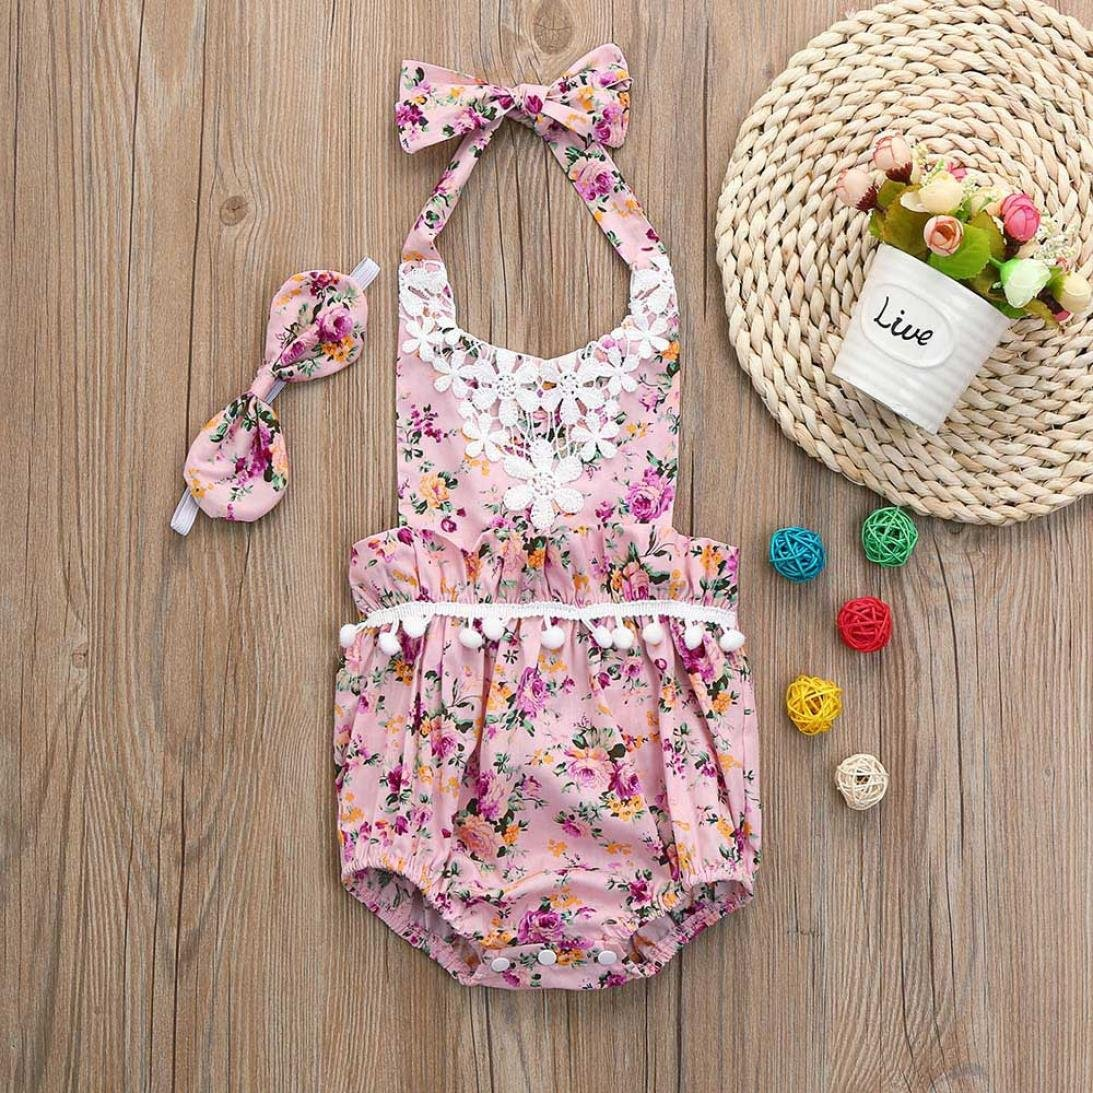 492758897f7 Amazon.com  FEITONG 2018 New Belt Cute Baby Rompers Summer Ruffled Floral  Vest Sleeveless Backless Romper  Baby